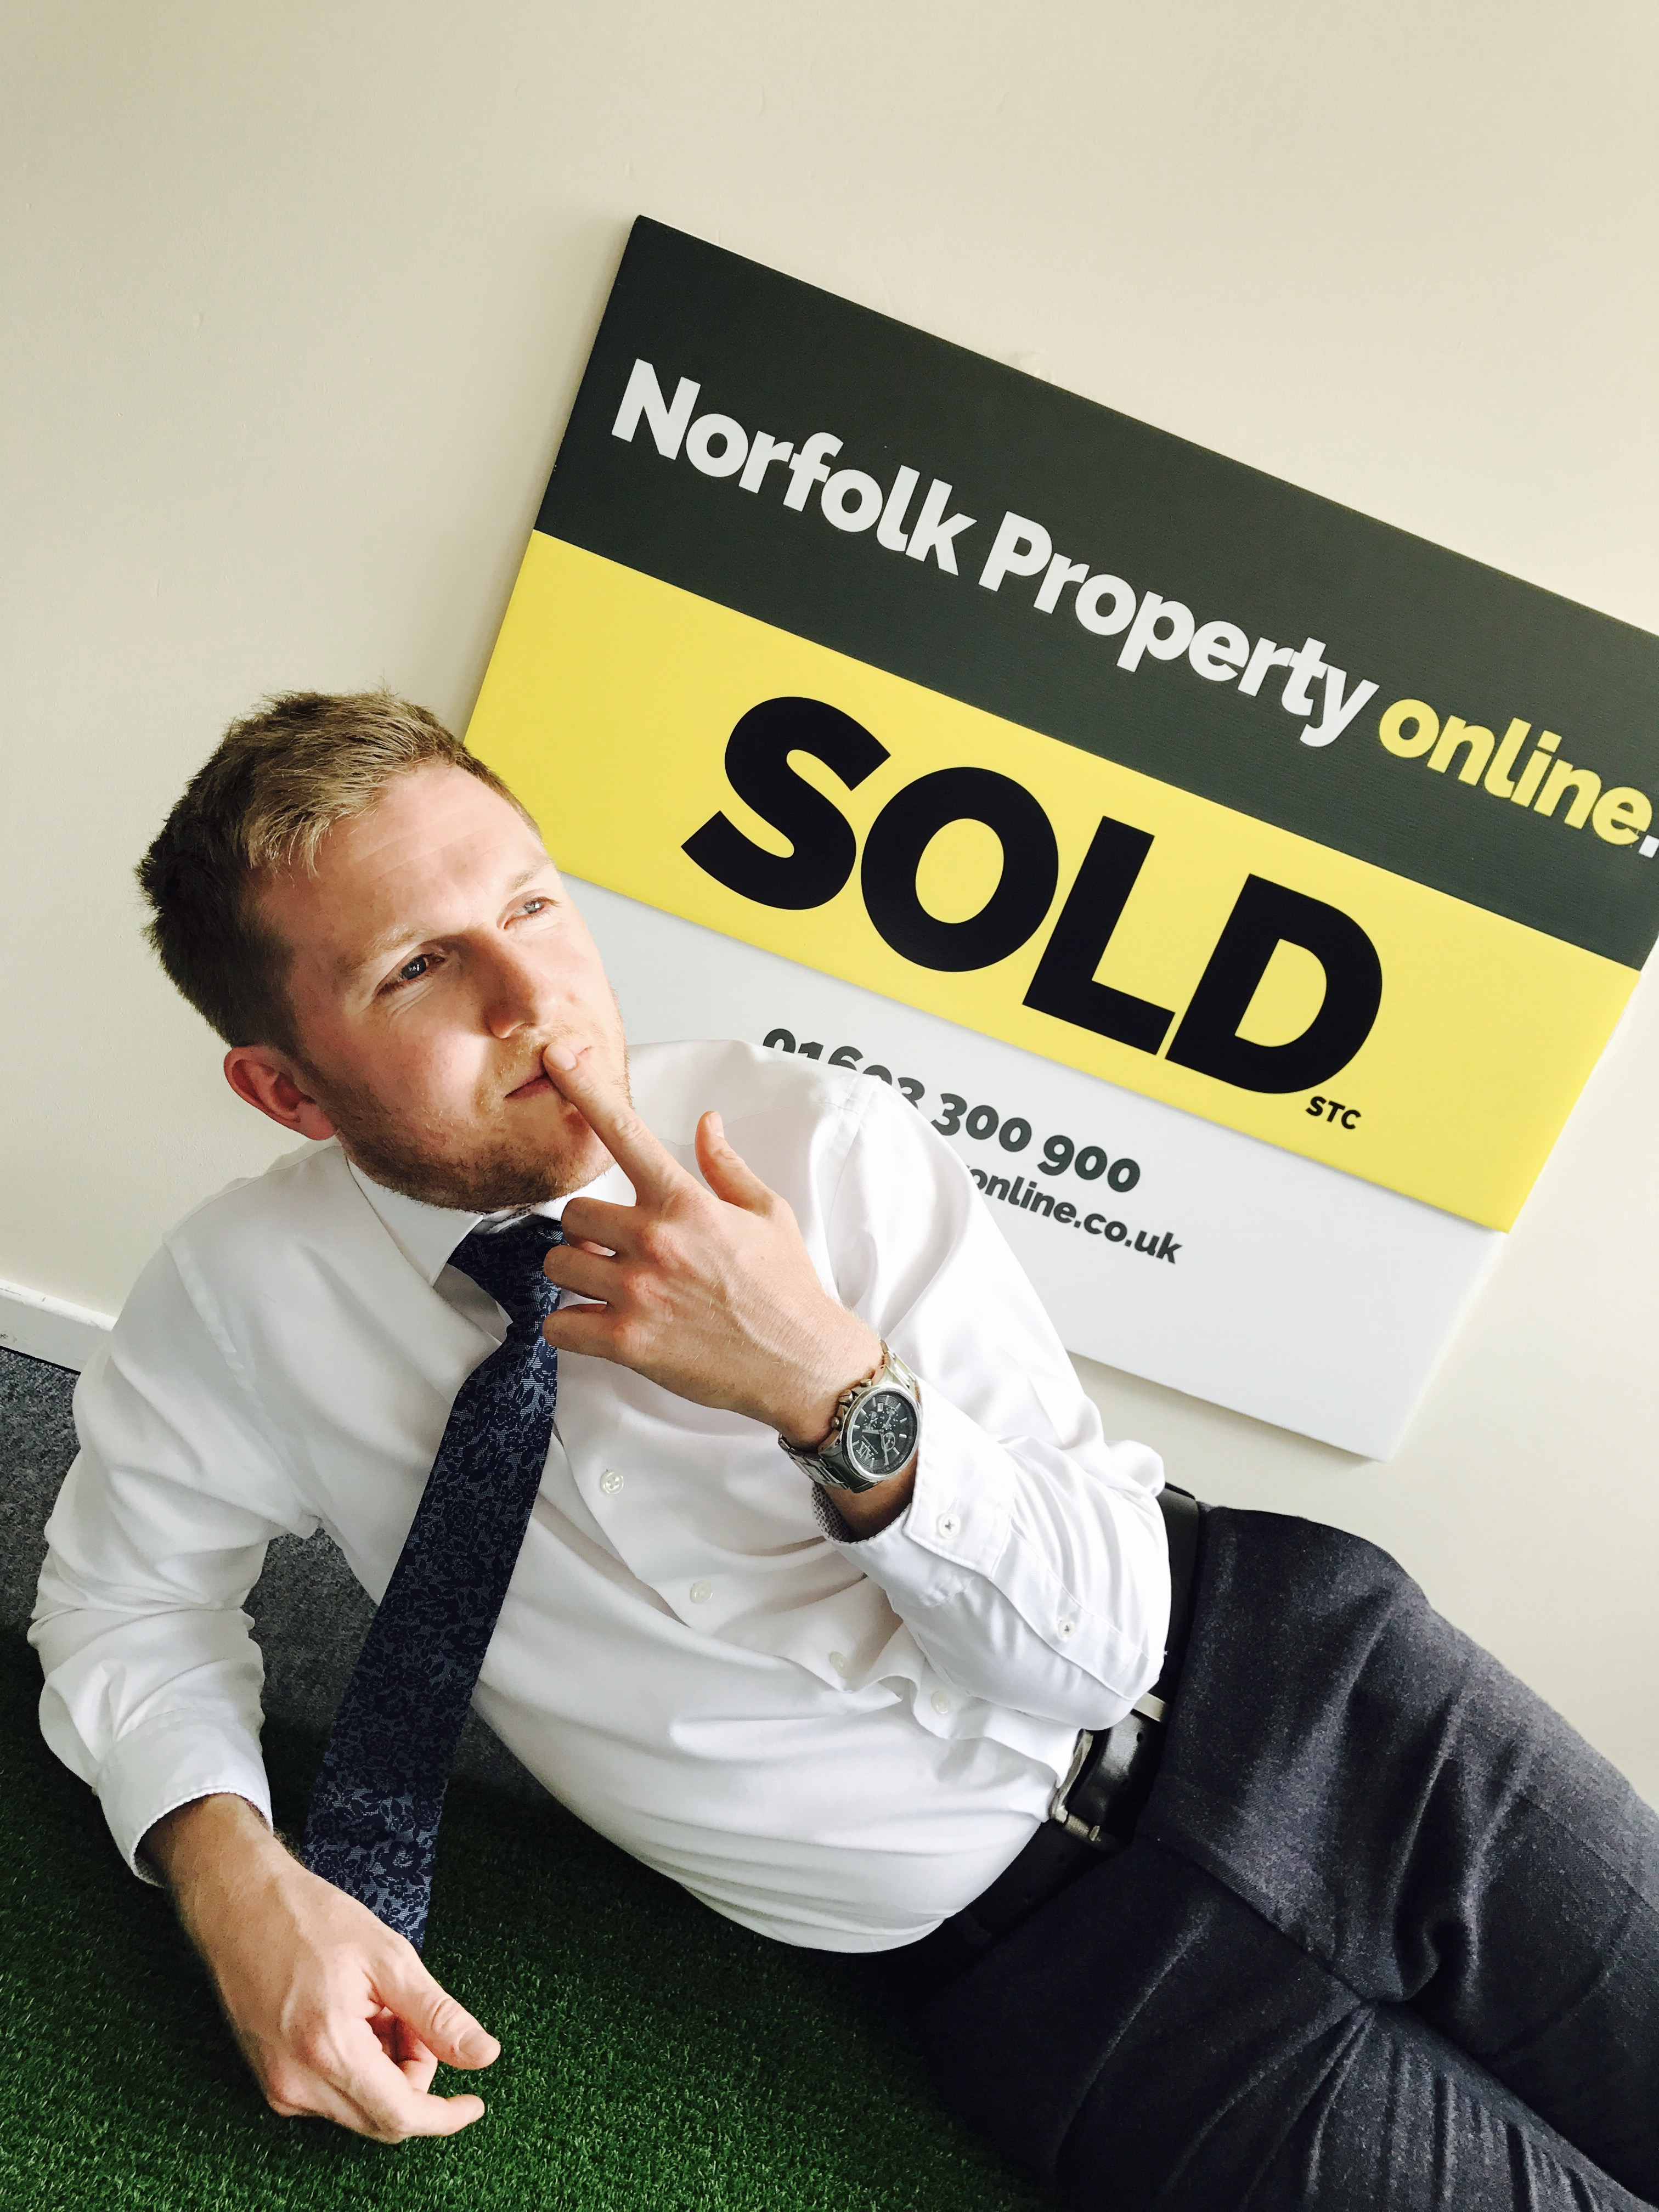 Dan posing infront of a Norfolk Property Online 'for sale' board